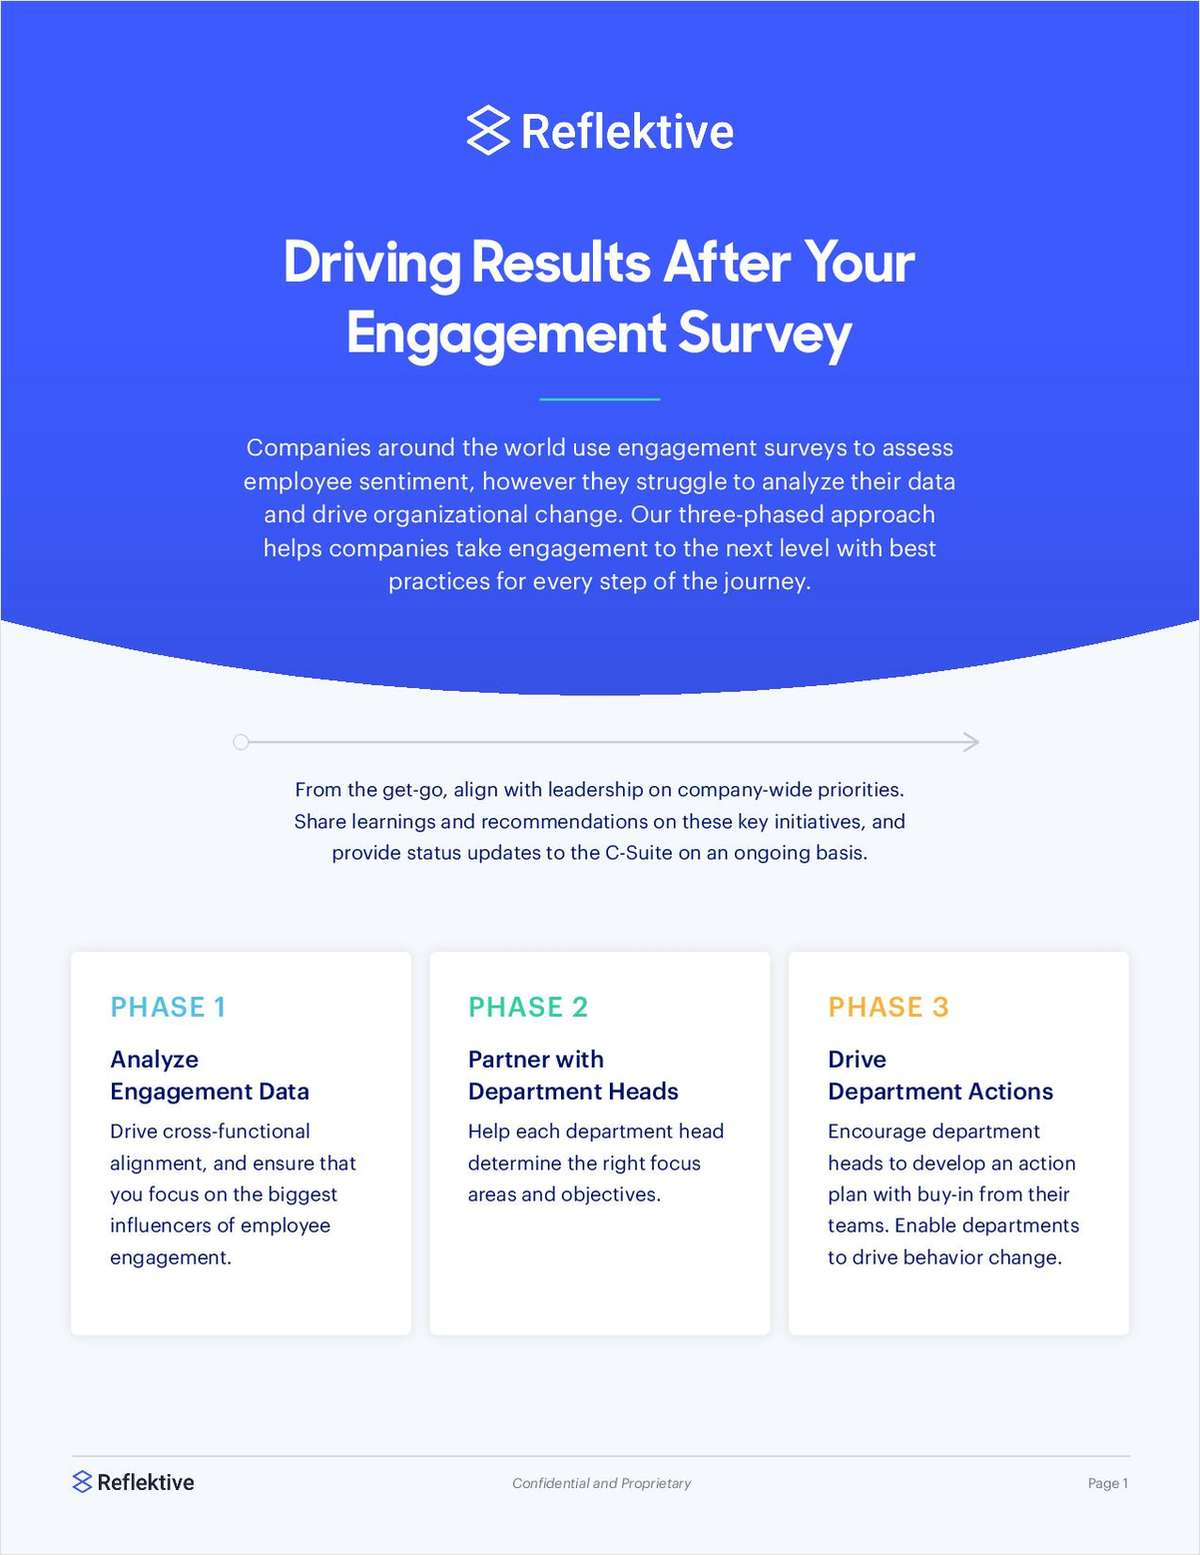 Driving Results After Your Engagement Survey